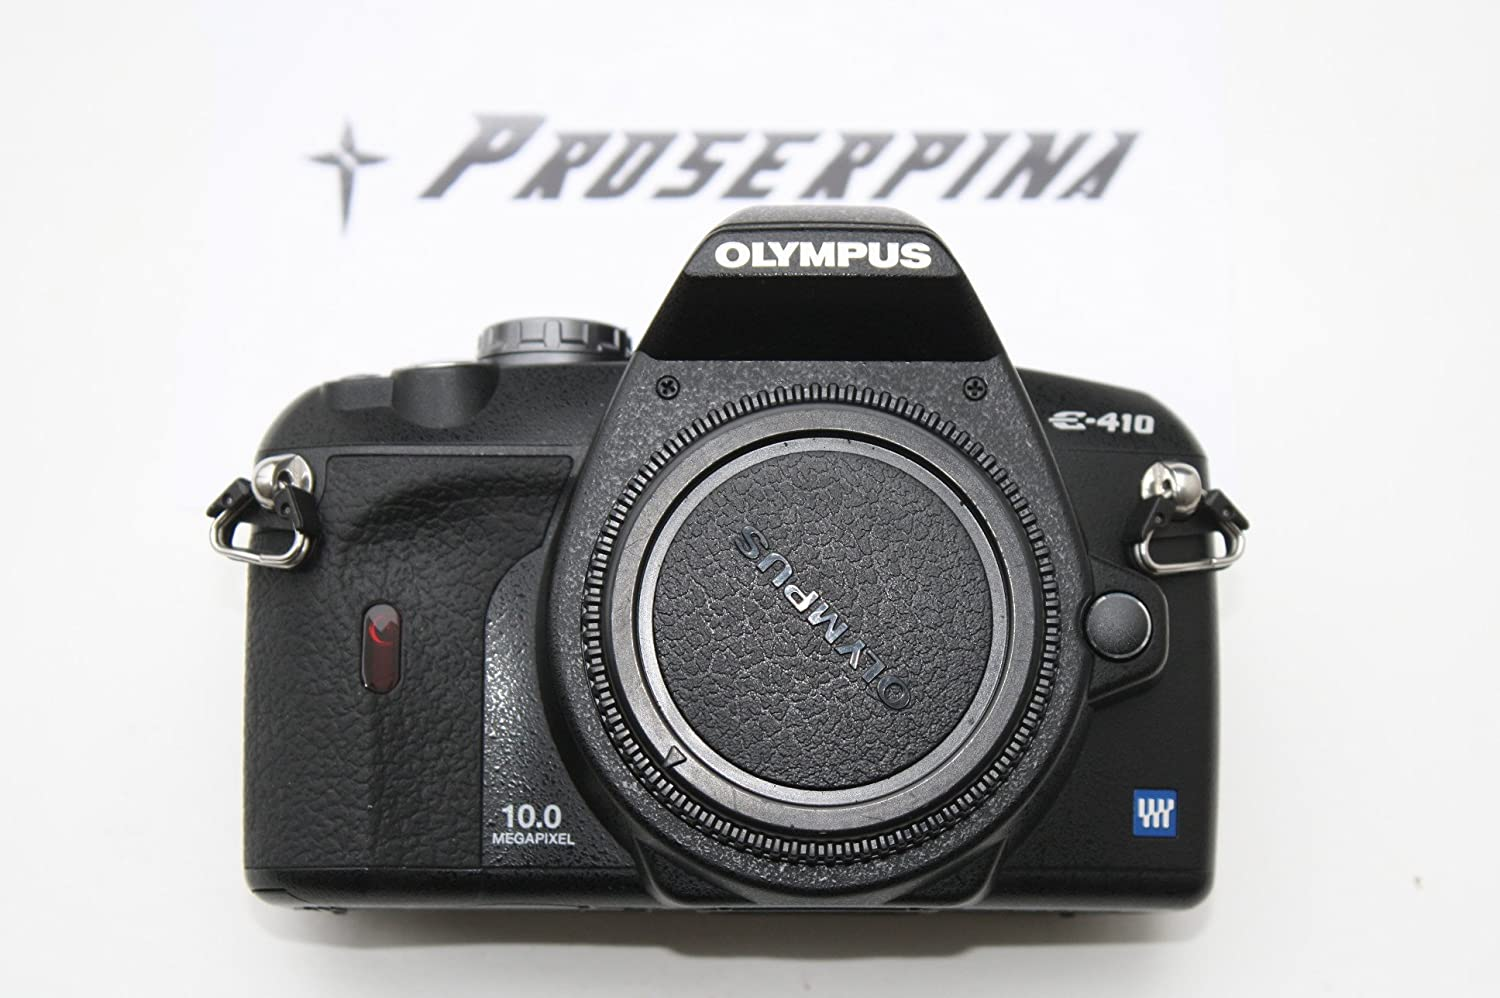 Amazon.com: Olympus EVOLT E410 10 MP Cámara réflex digital ...